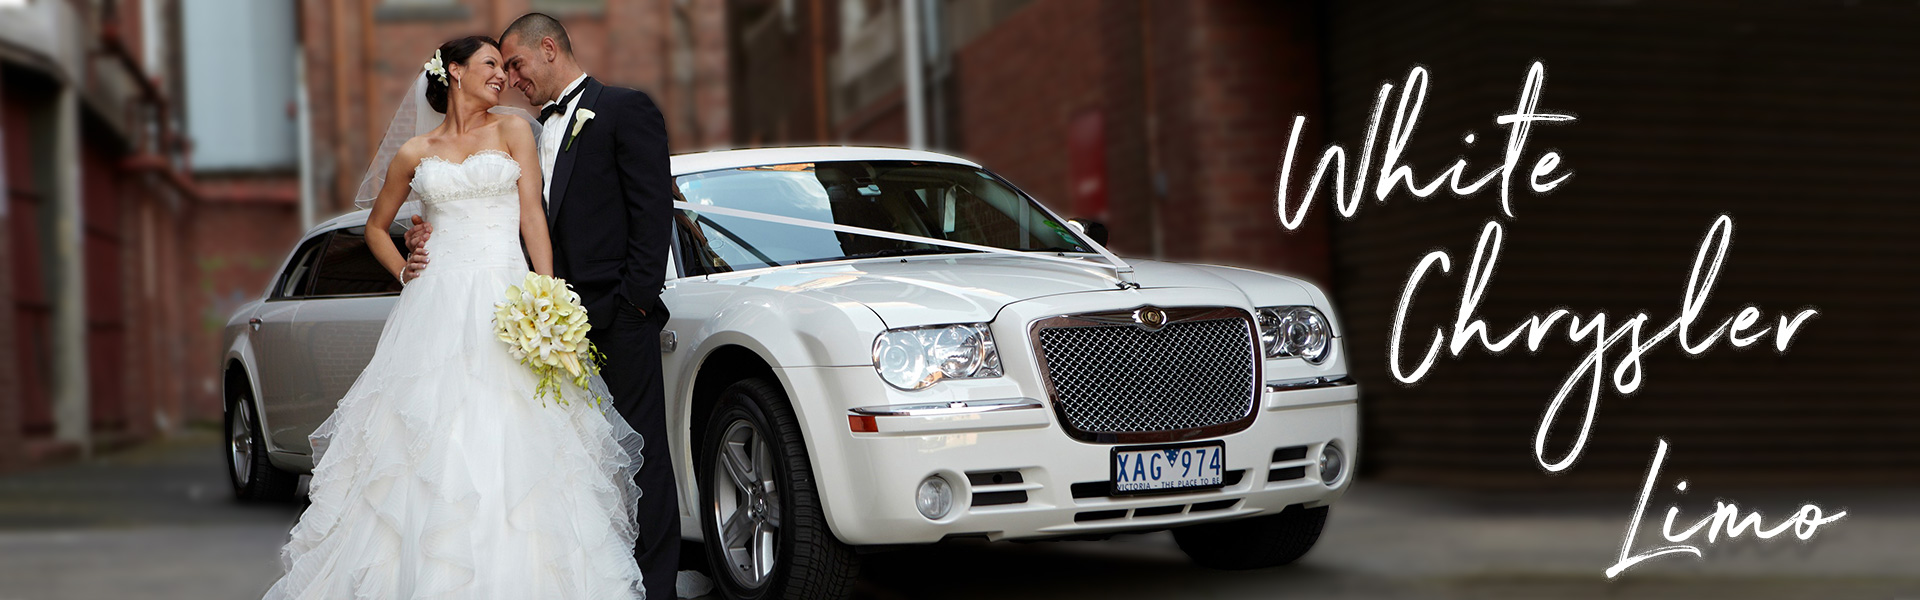 Black Chrysler Limo Hire Melbourne